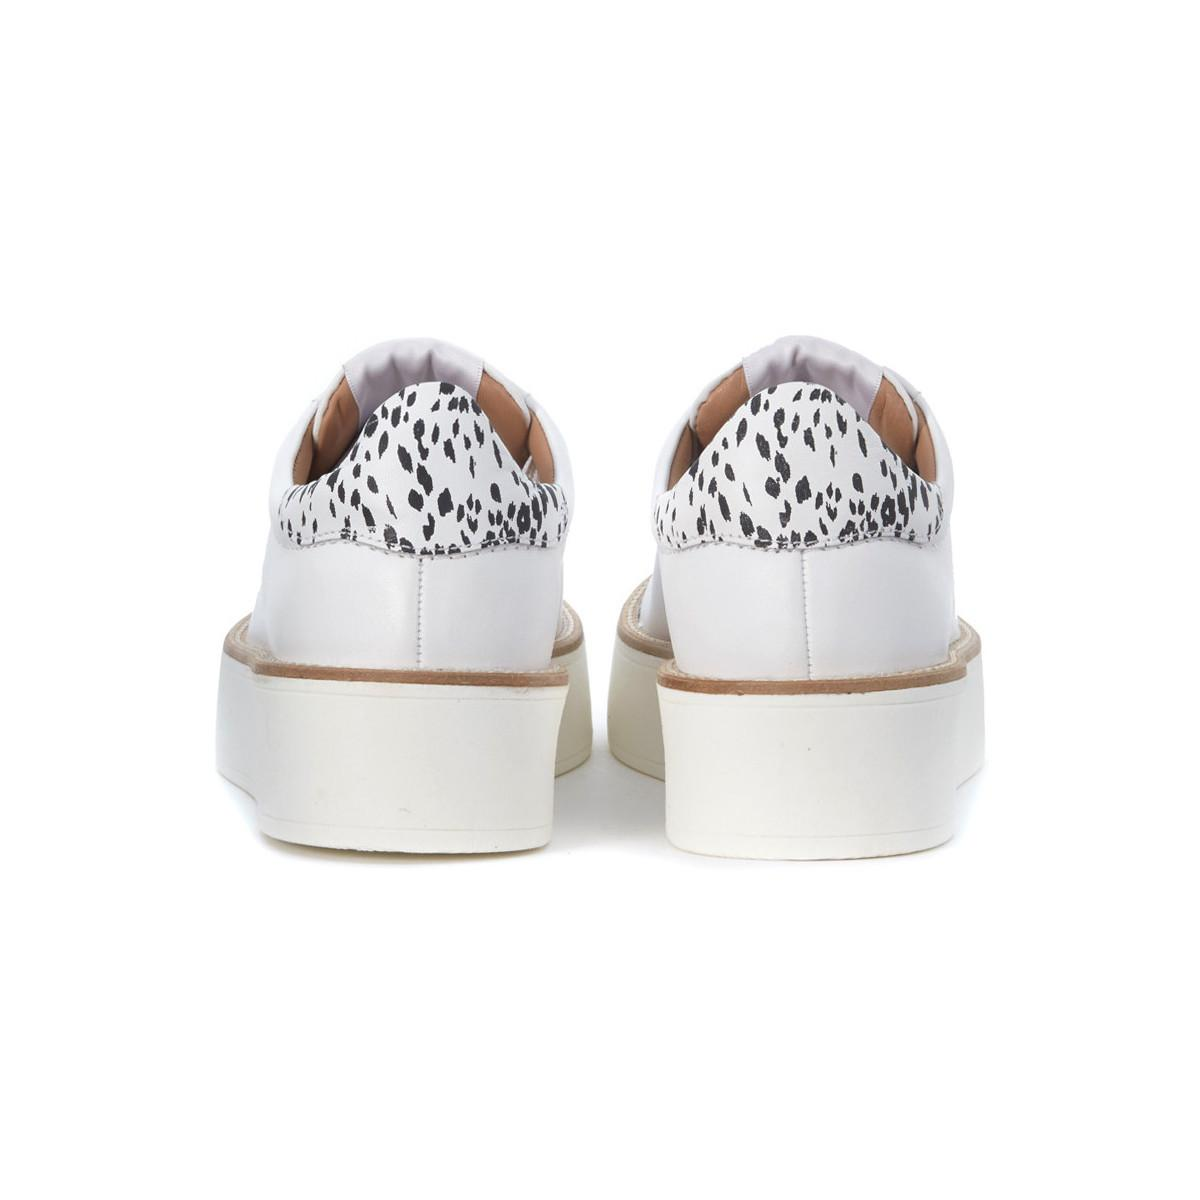 Twin Set Twinset White Leather Sneaker Women's Trainers In White